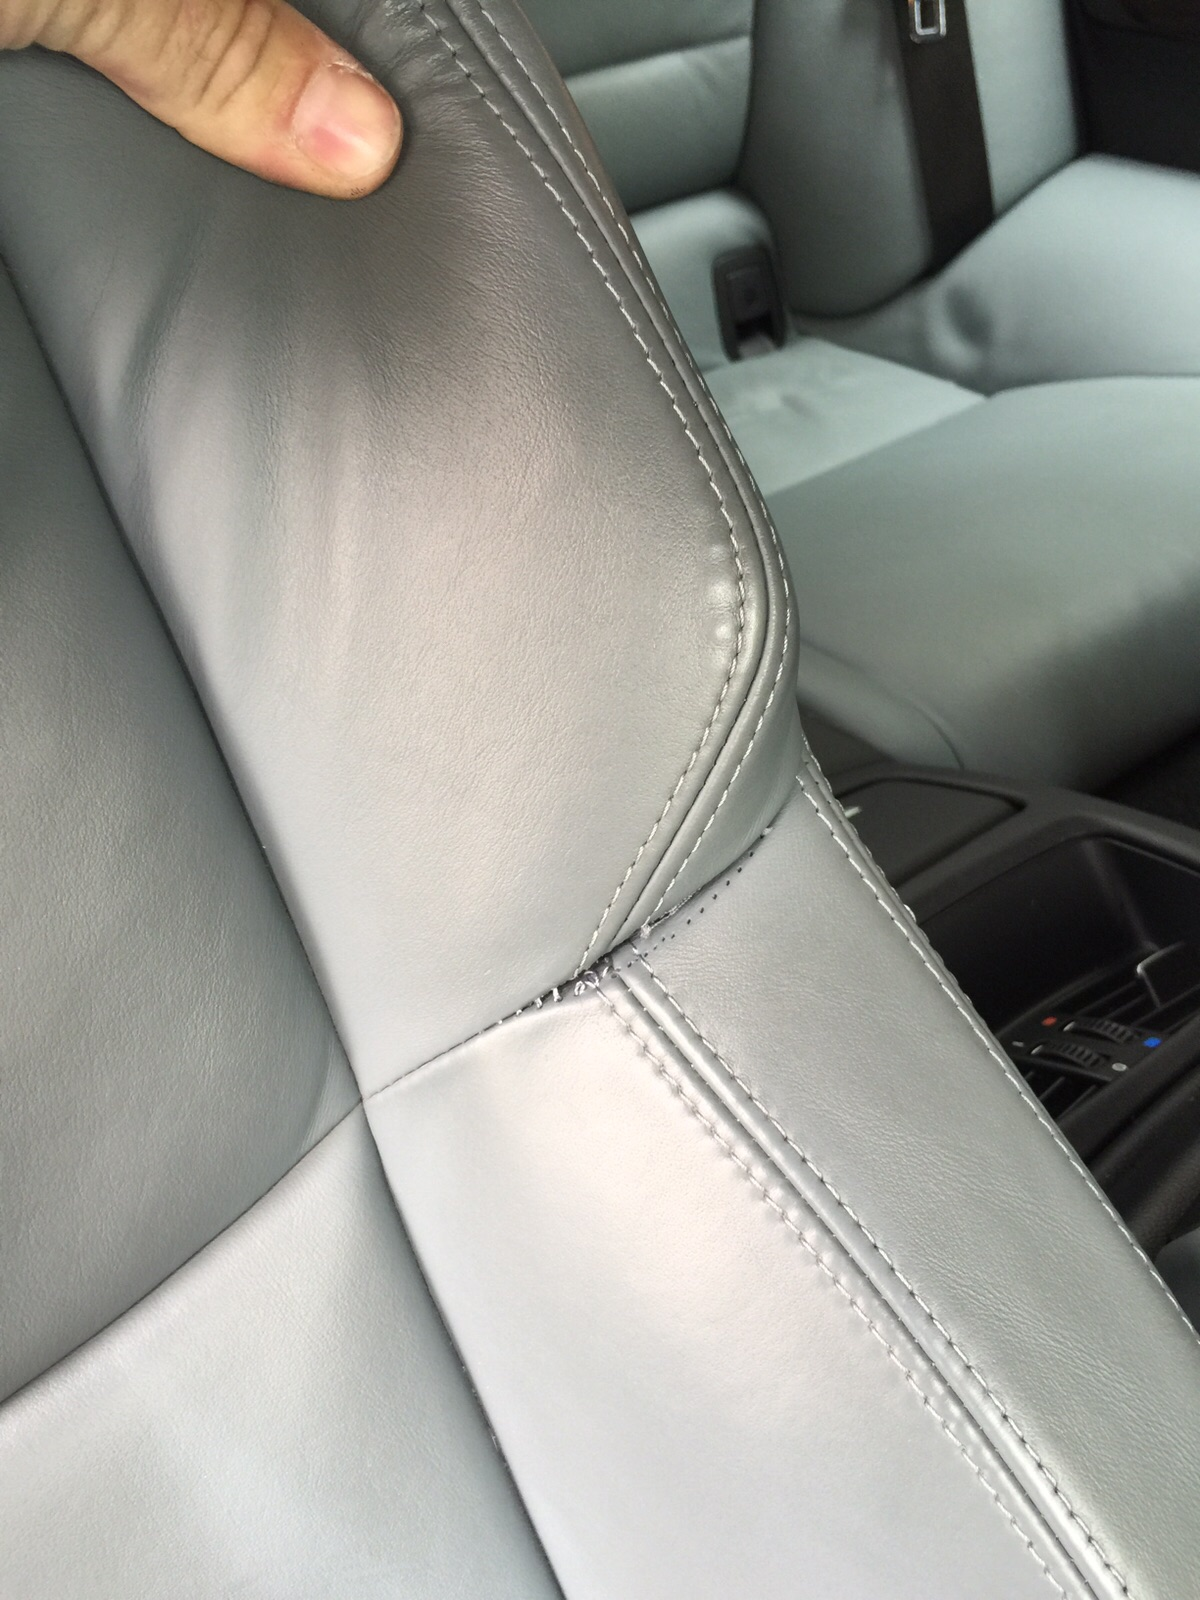 Drivers seat has burst stitching on the shoulder of the seat.